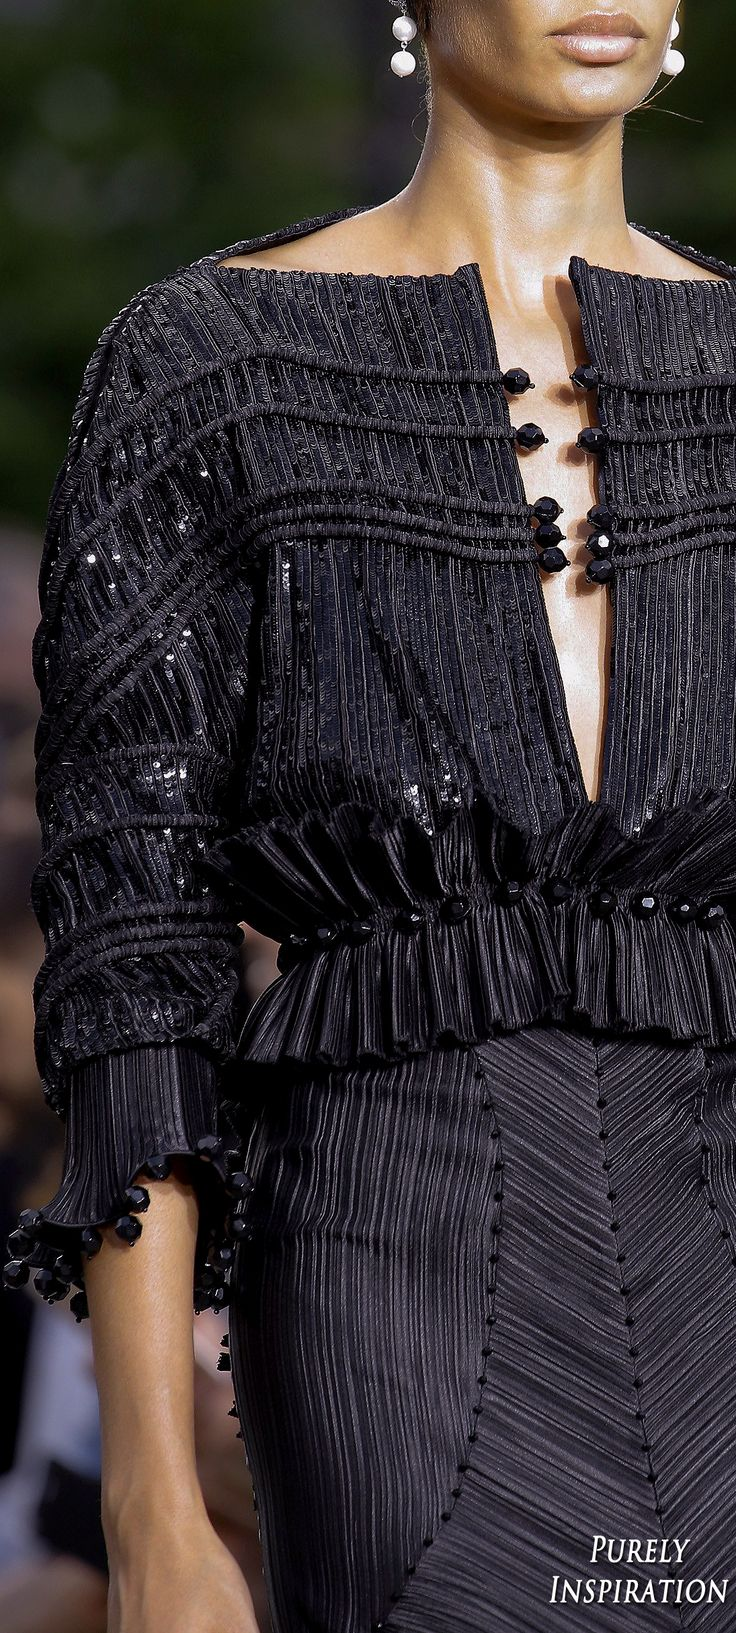 Givenchy 2016 Fall Haute Couture as presented in SS2017 Menswear Runway | Purely Inspiration